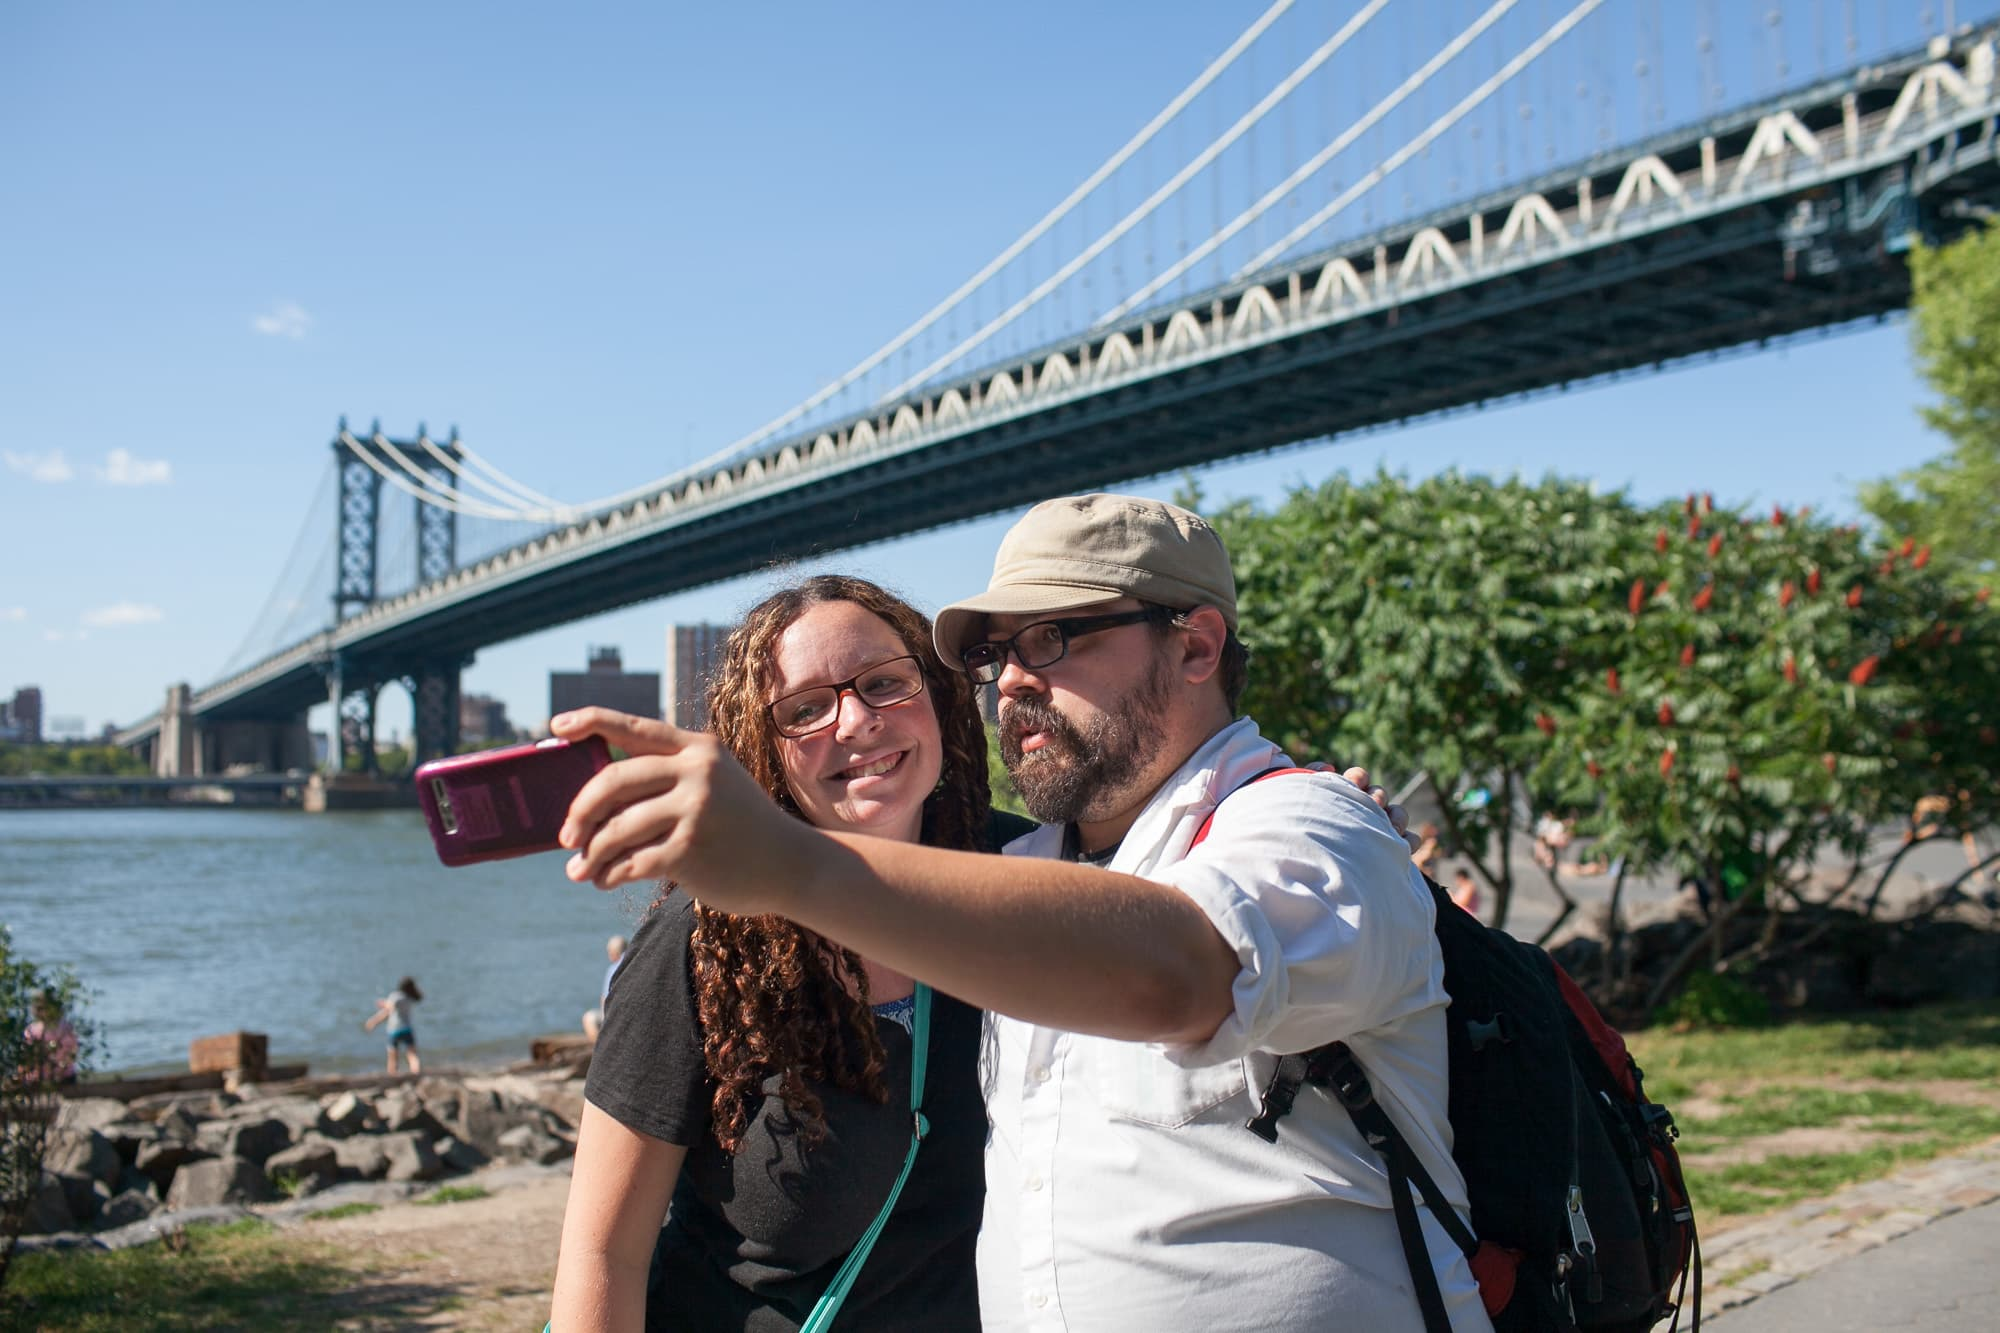 Photo in front of the Manhattan Bridge